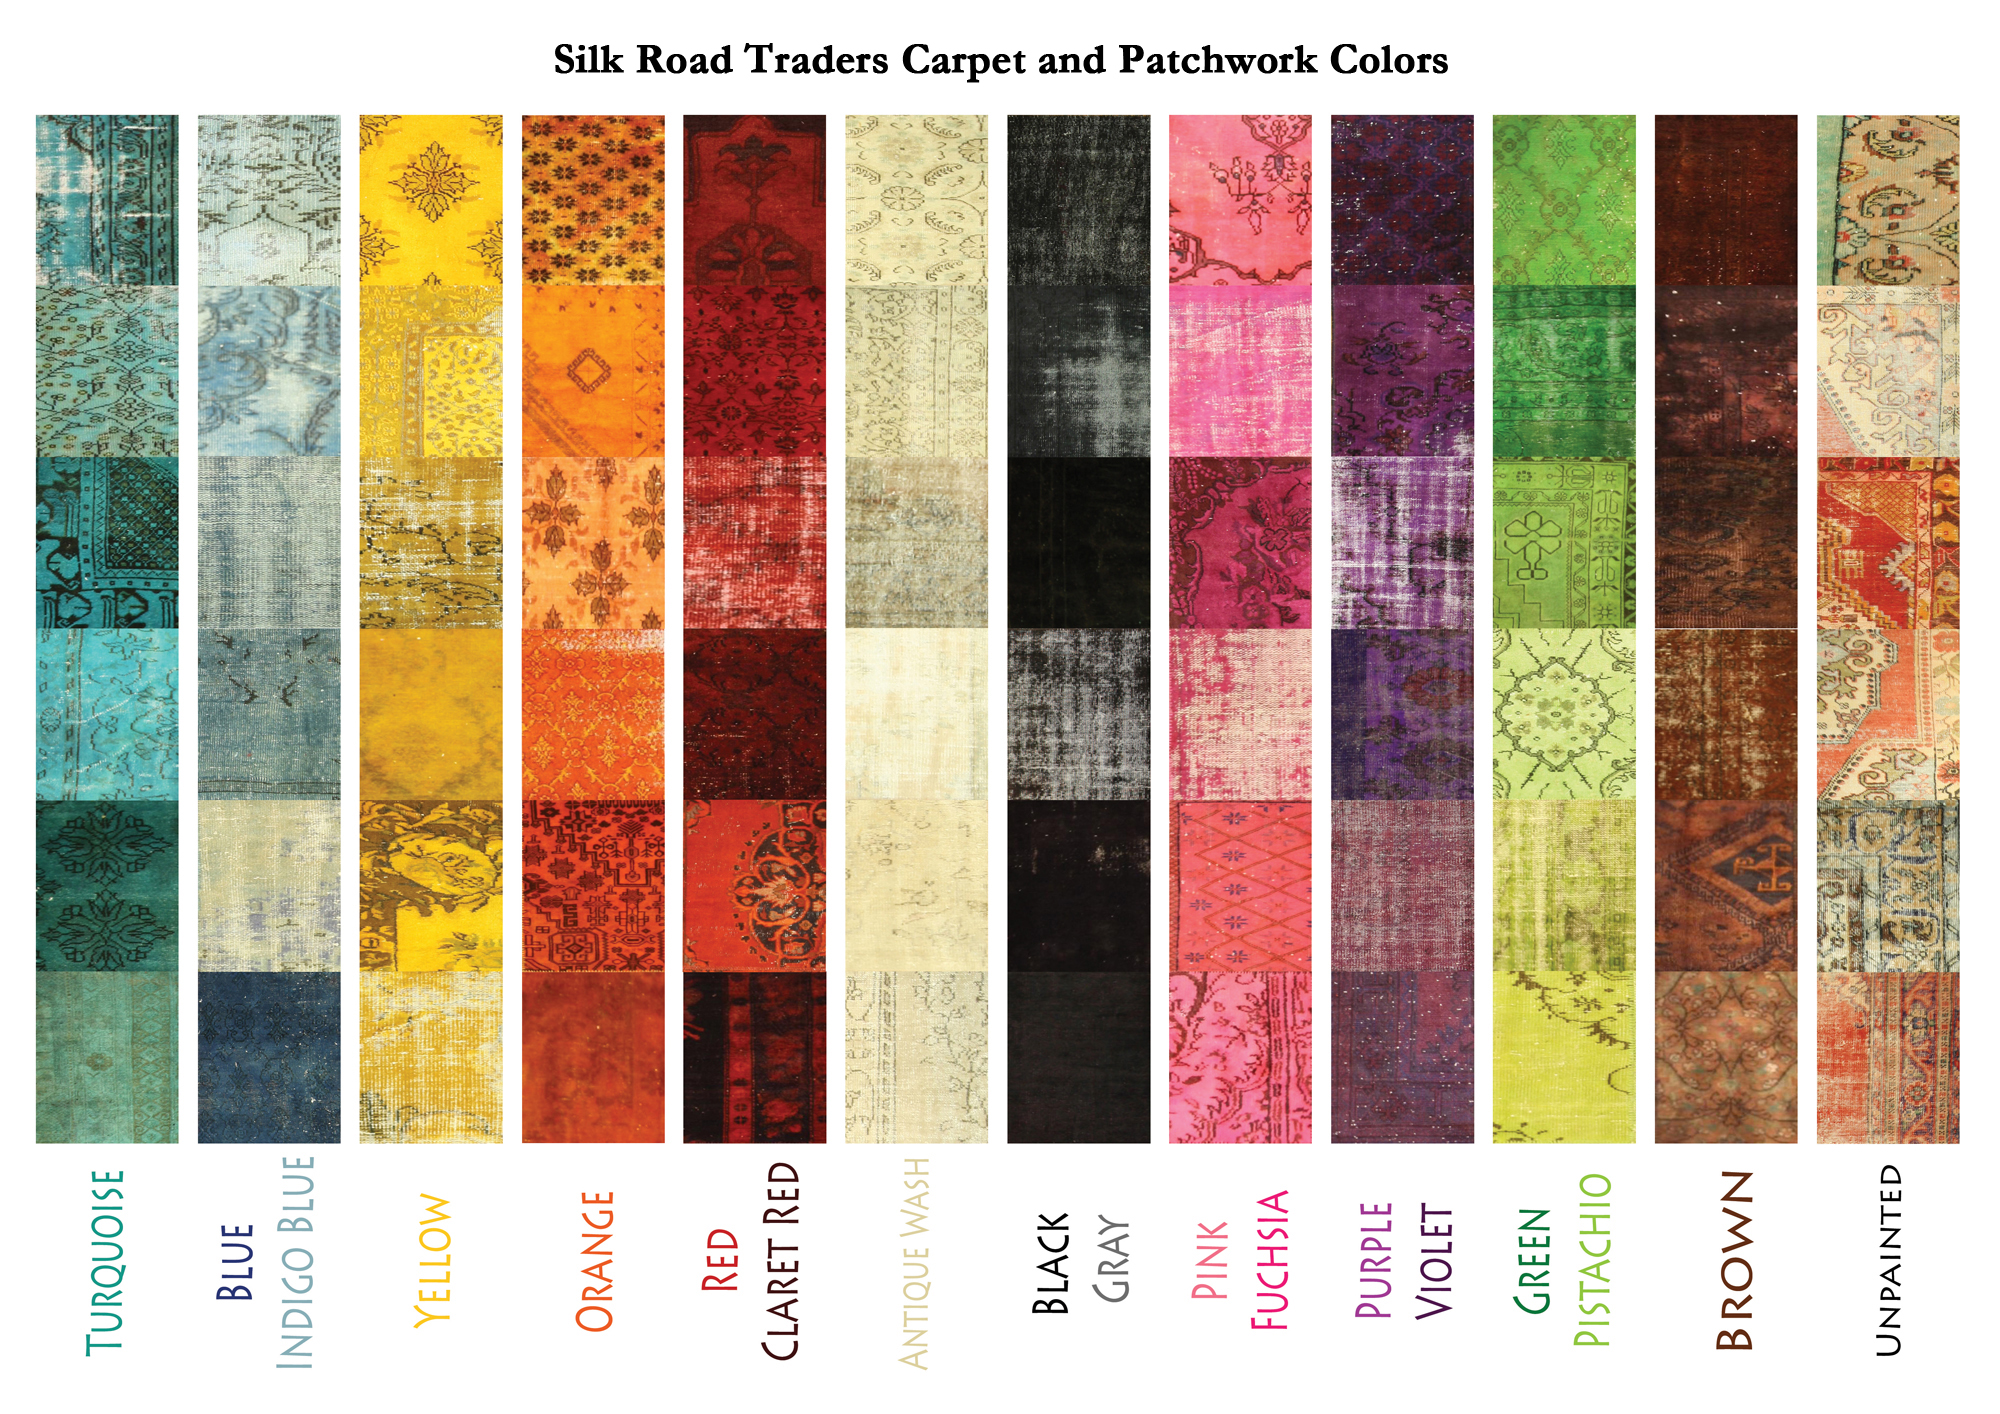 Patchwork over dye carpets link to carpet color chart geenschuldenfo Image collections